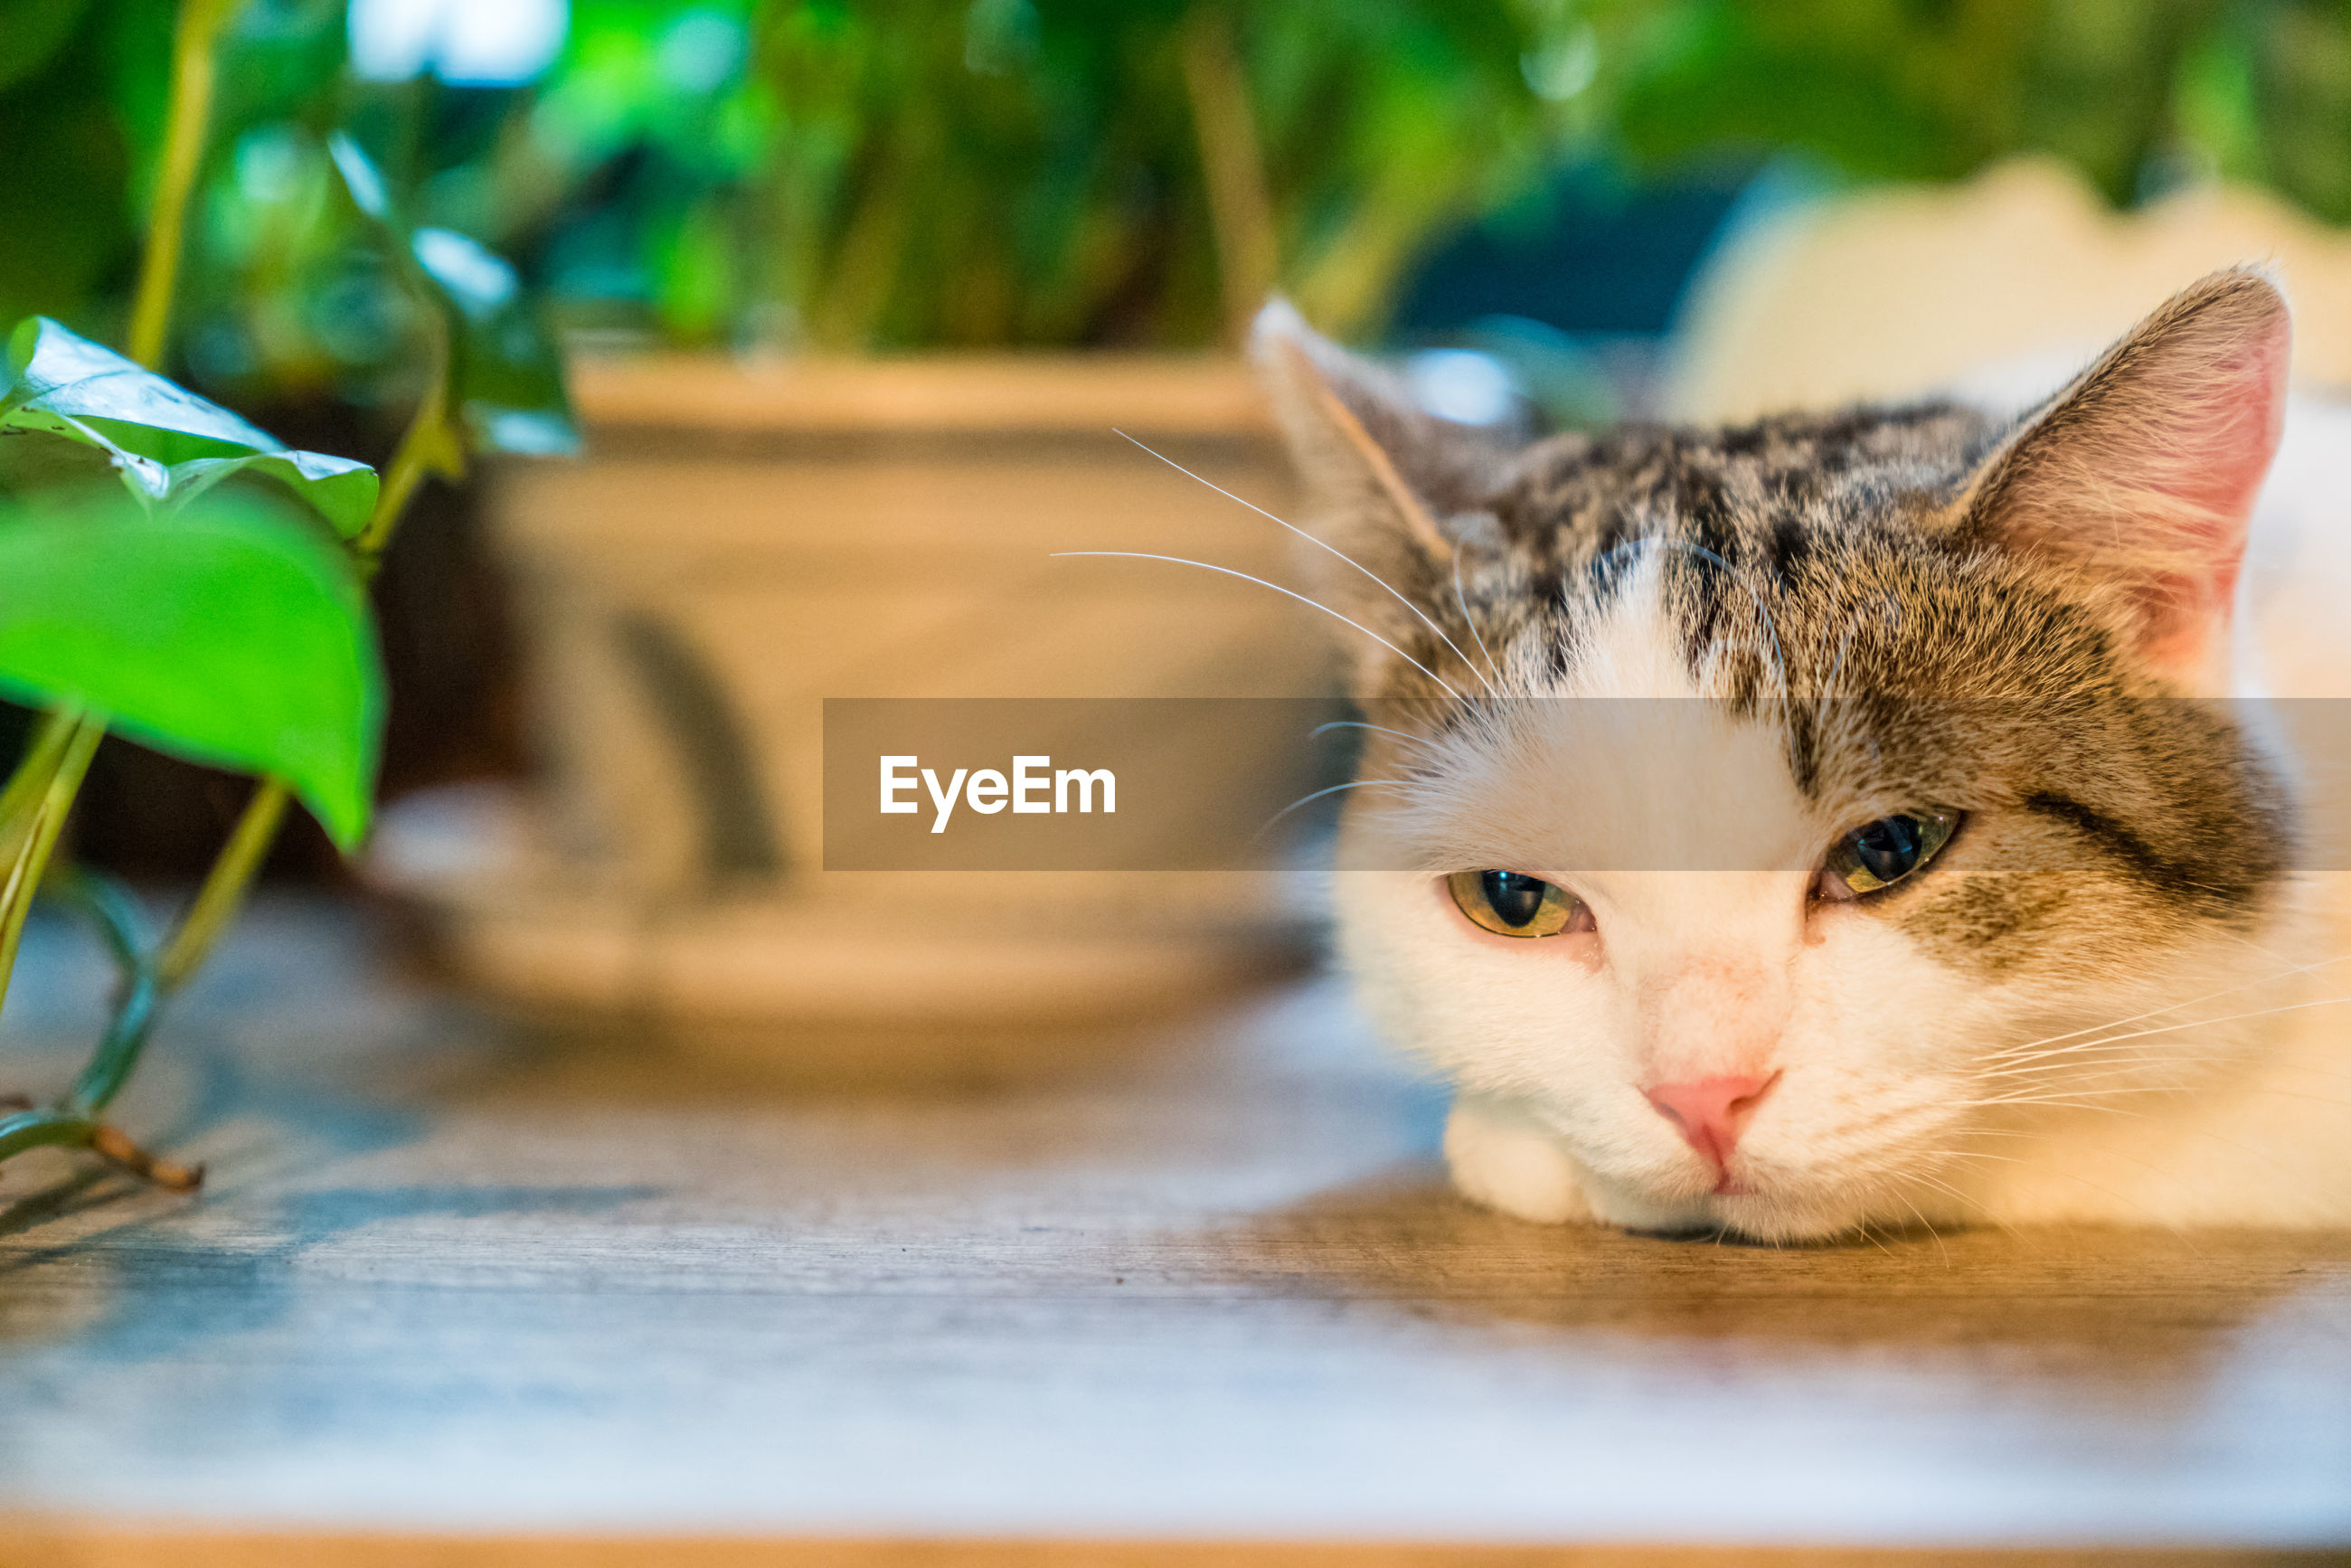 animal themes, cat, animal, feline, domestic, domestic cat, mammal, pets, one animal, domestic animals, vertebrate, no people, selective focus, looking at camera, portrait, whisker, animal body part, close-up, day, relaxation, animal head, animal eye